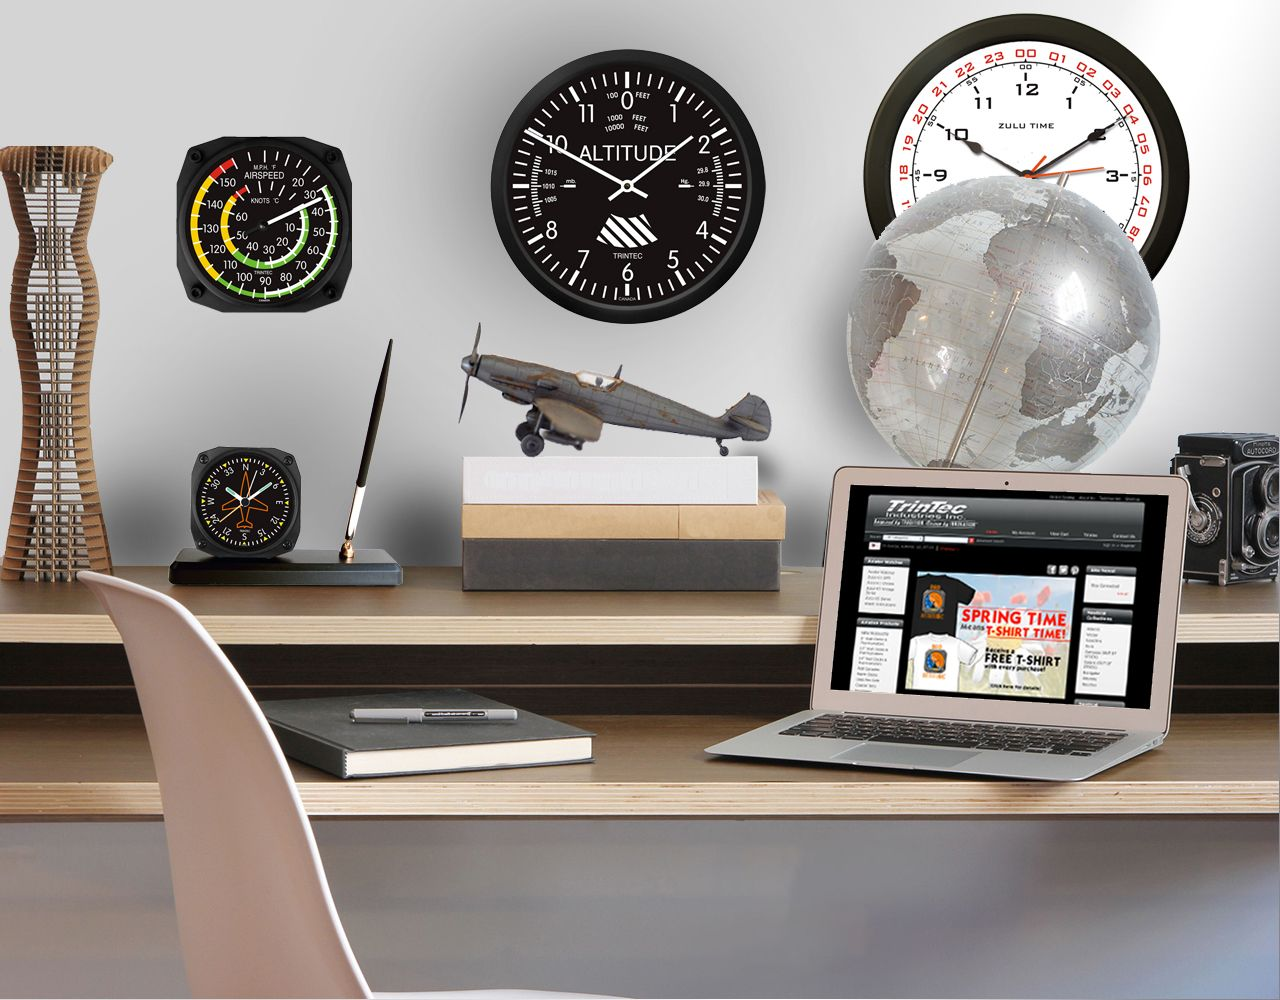 Aviation Up your Space! With products from the 2013 Trintec Aviation Catalog! Available at: www.trintec.com